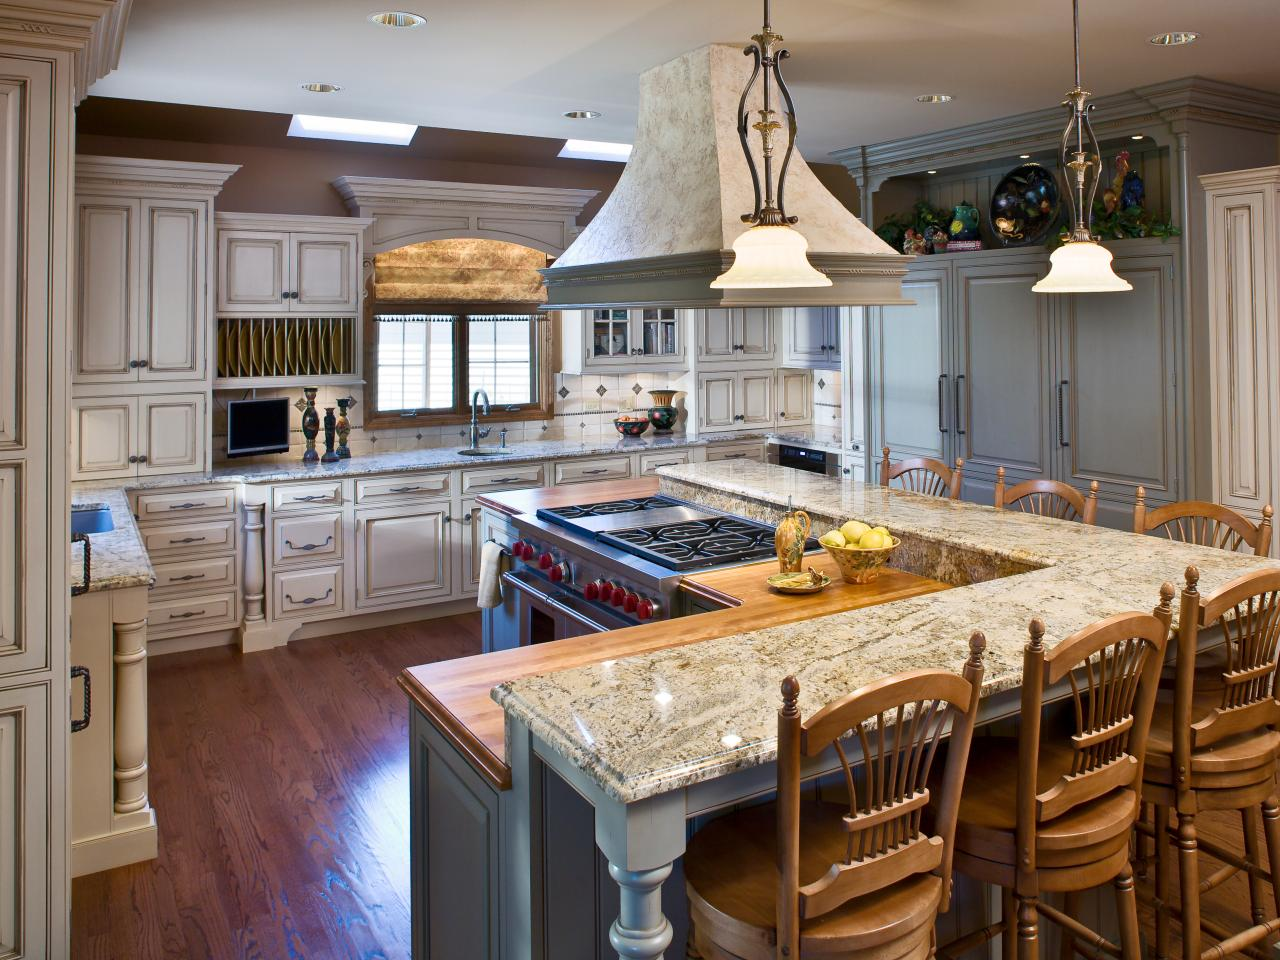 Show Me Kitchen Designs Small Kitchen Windows Pictures Ideas And Tips From Hgtv Hgtv